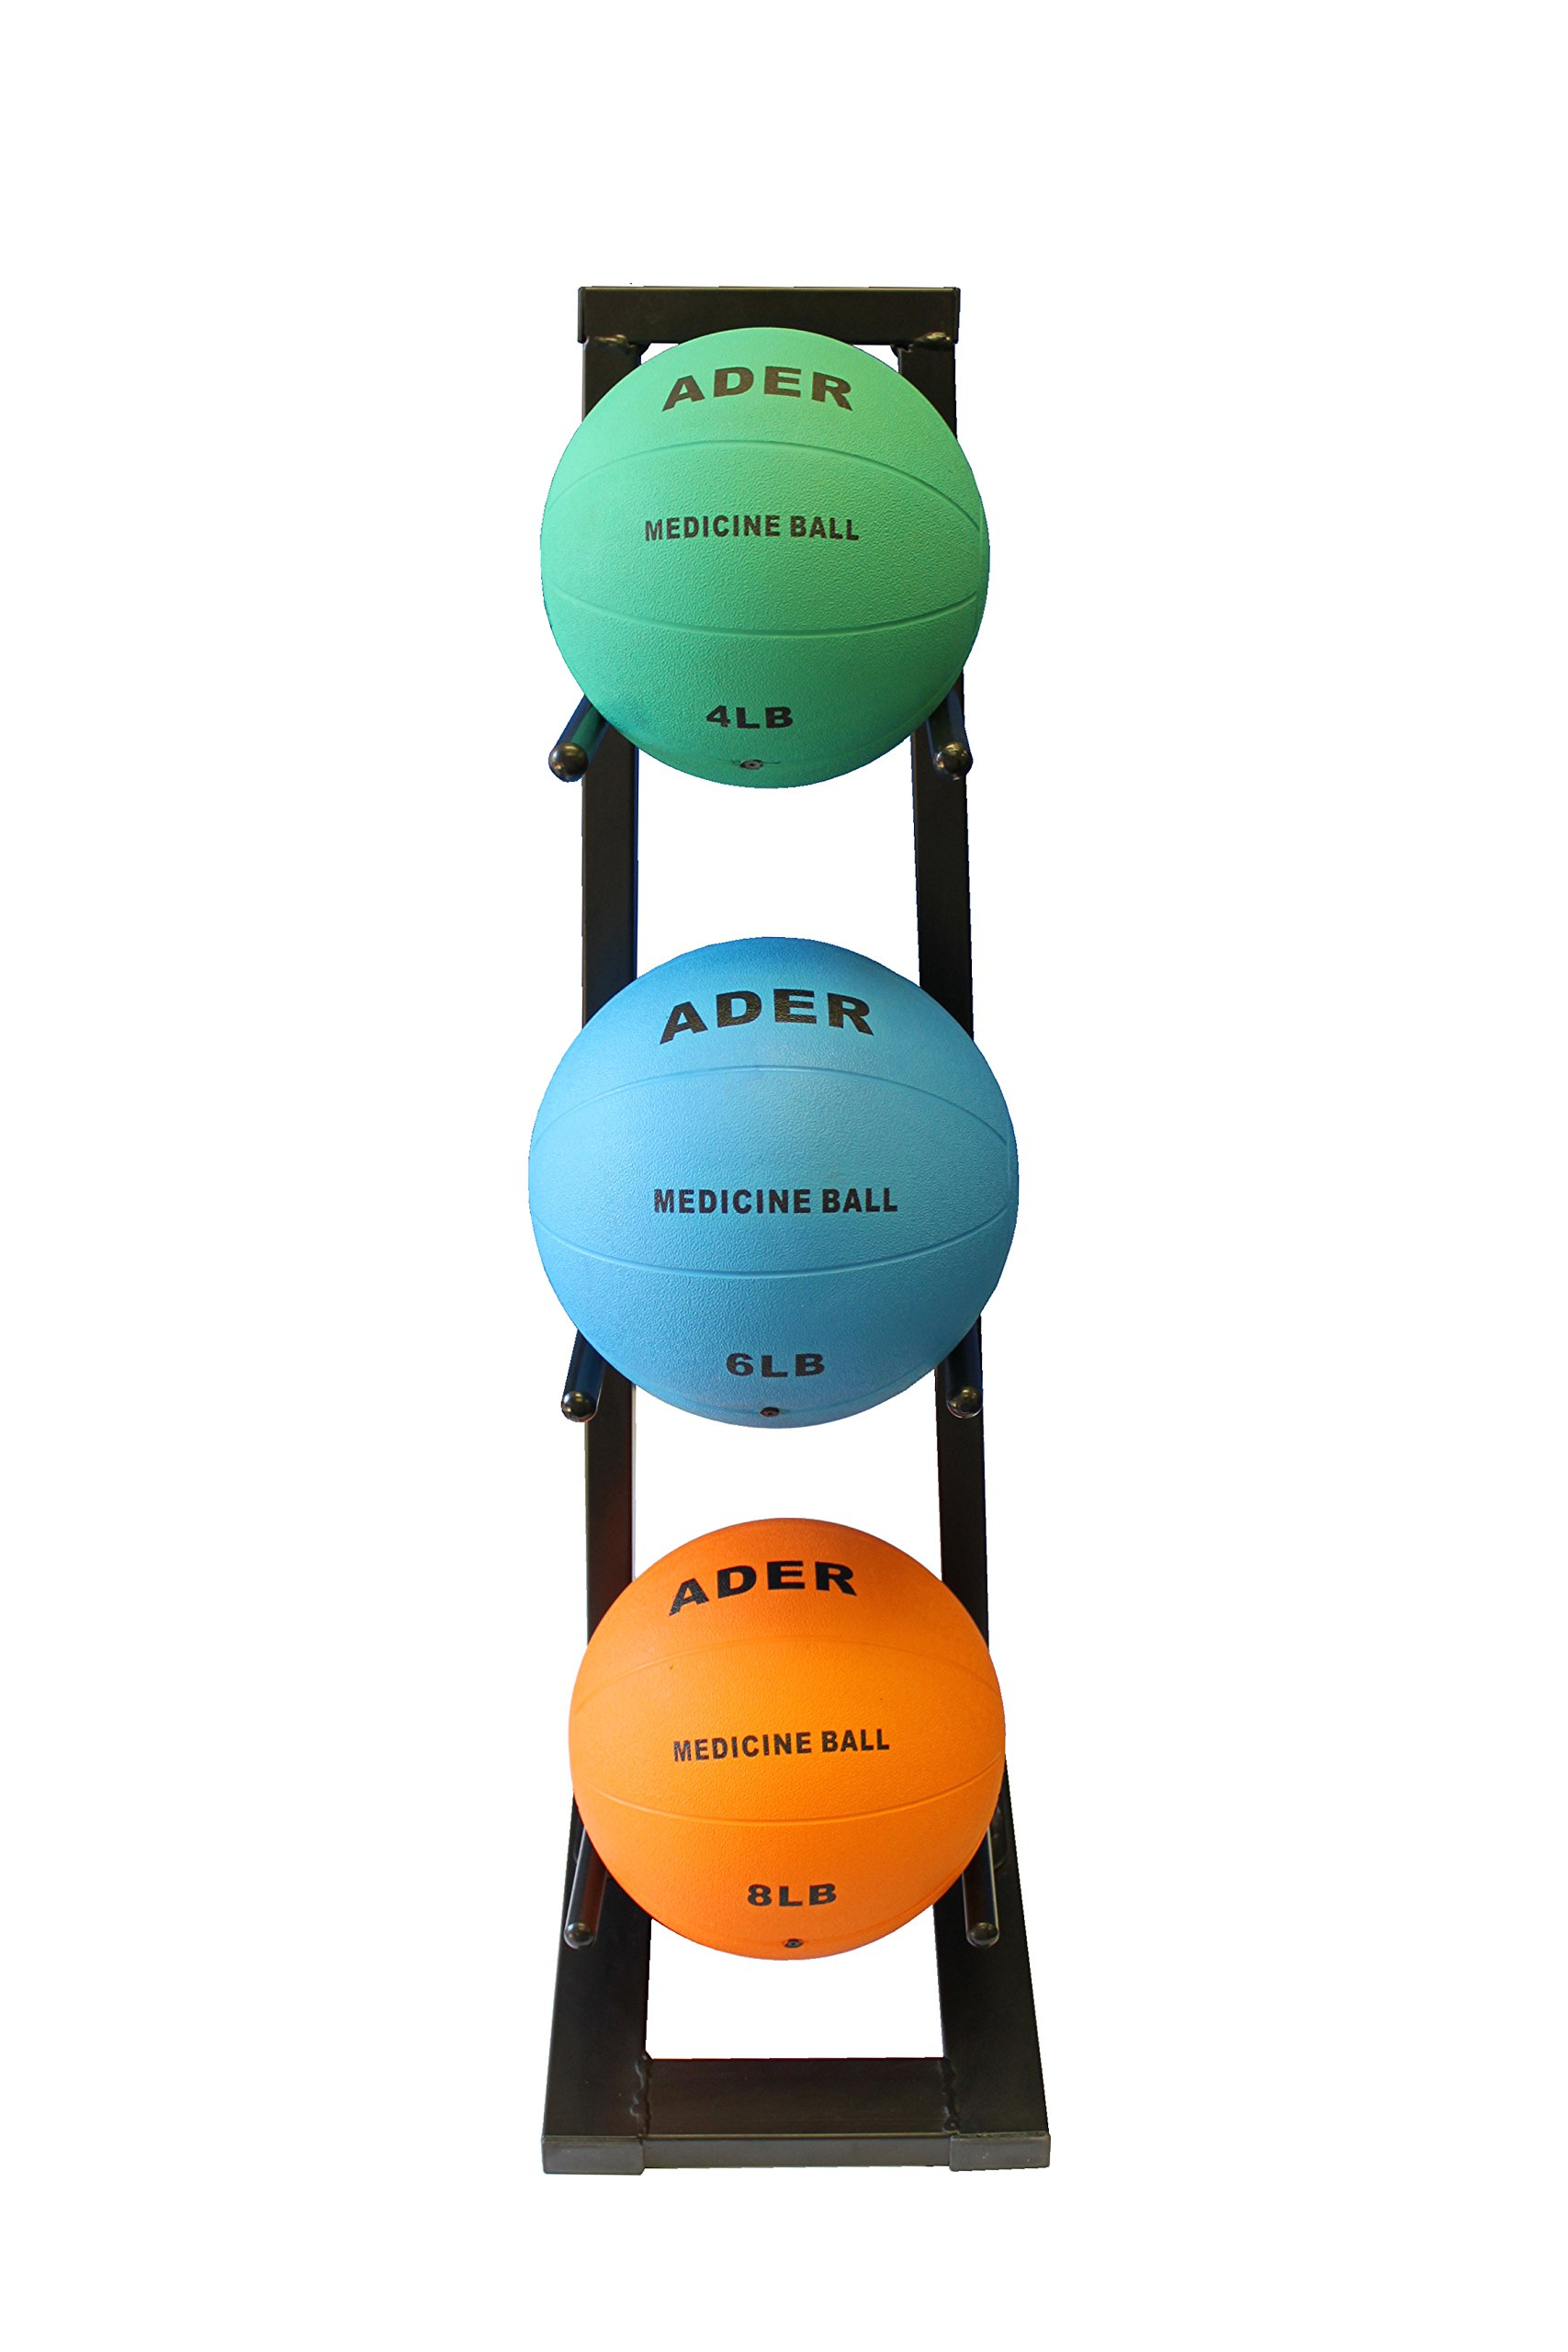 Ader Medicine Ball Set w/Rack (Rack + 8-12-25 LB Med Balls) by Ader Sporting Goods (Image #8)